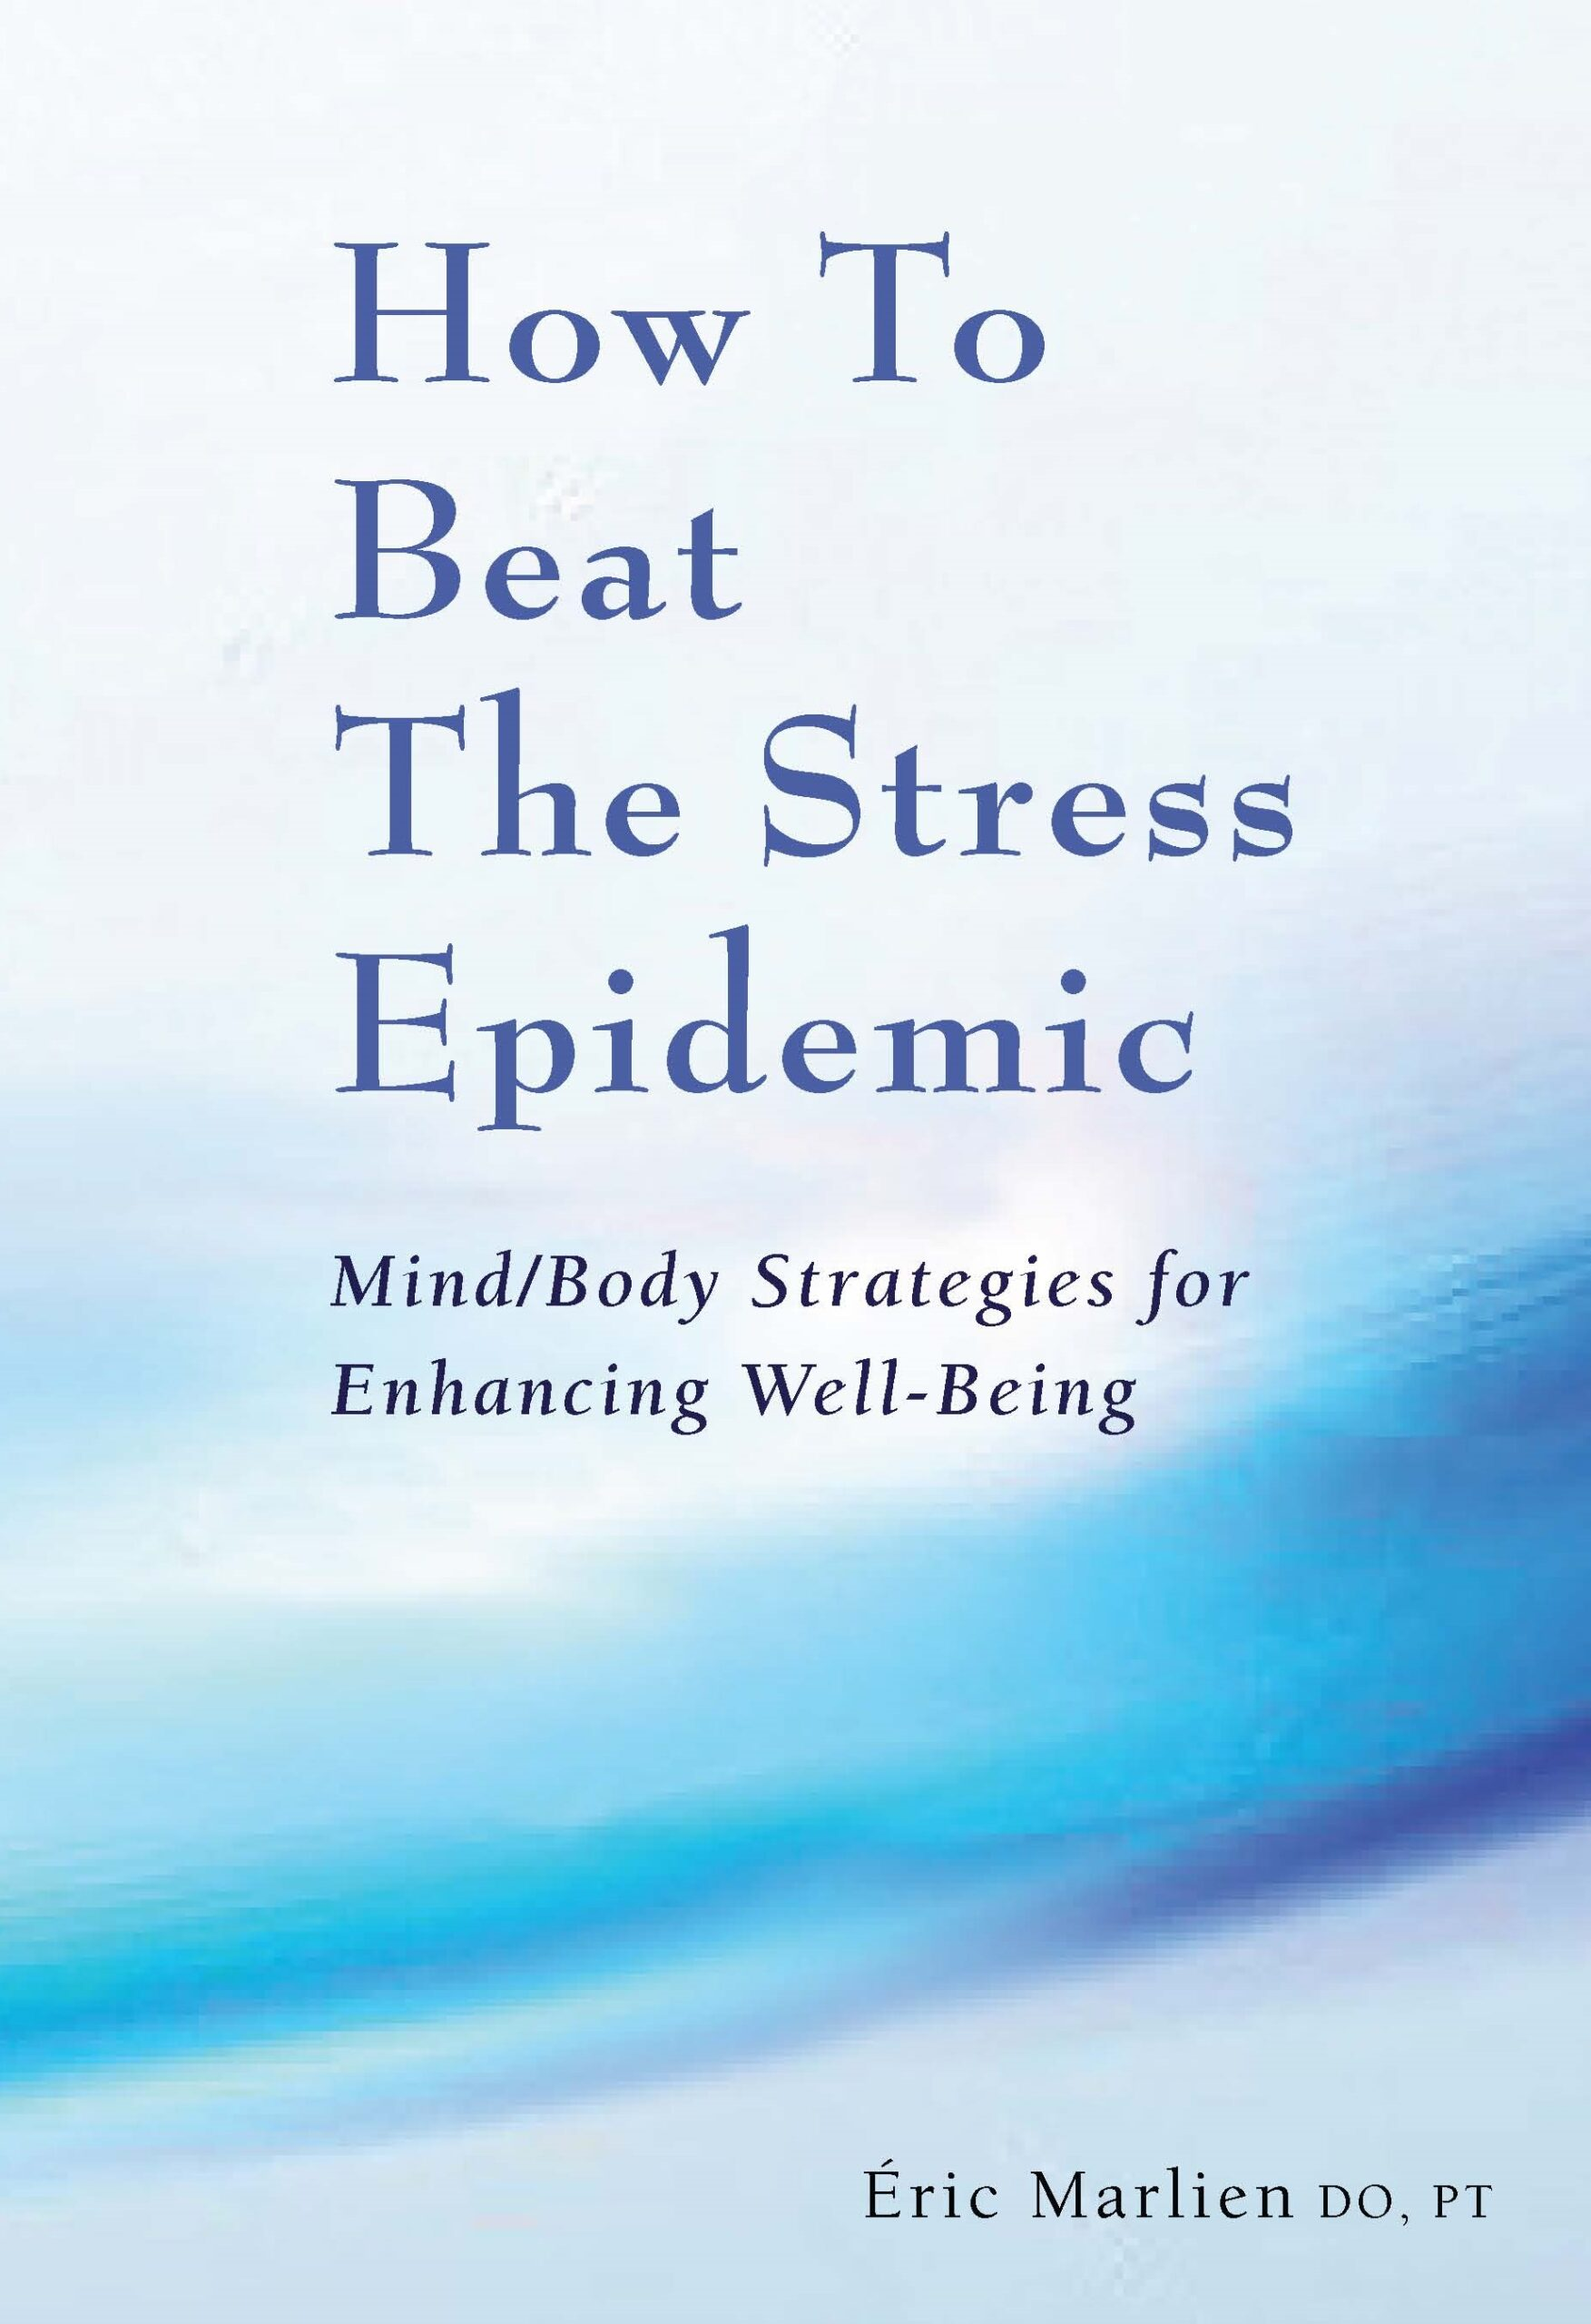 How to beat the stress epidemic